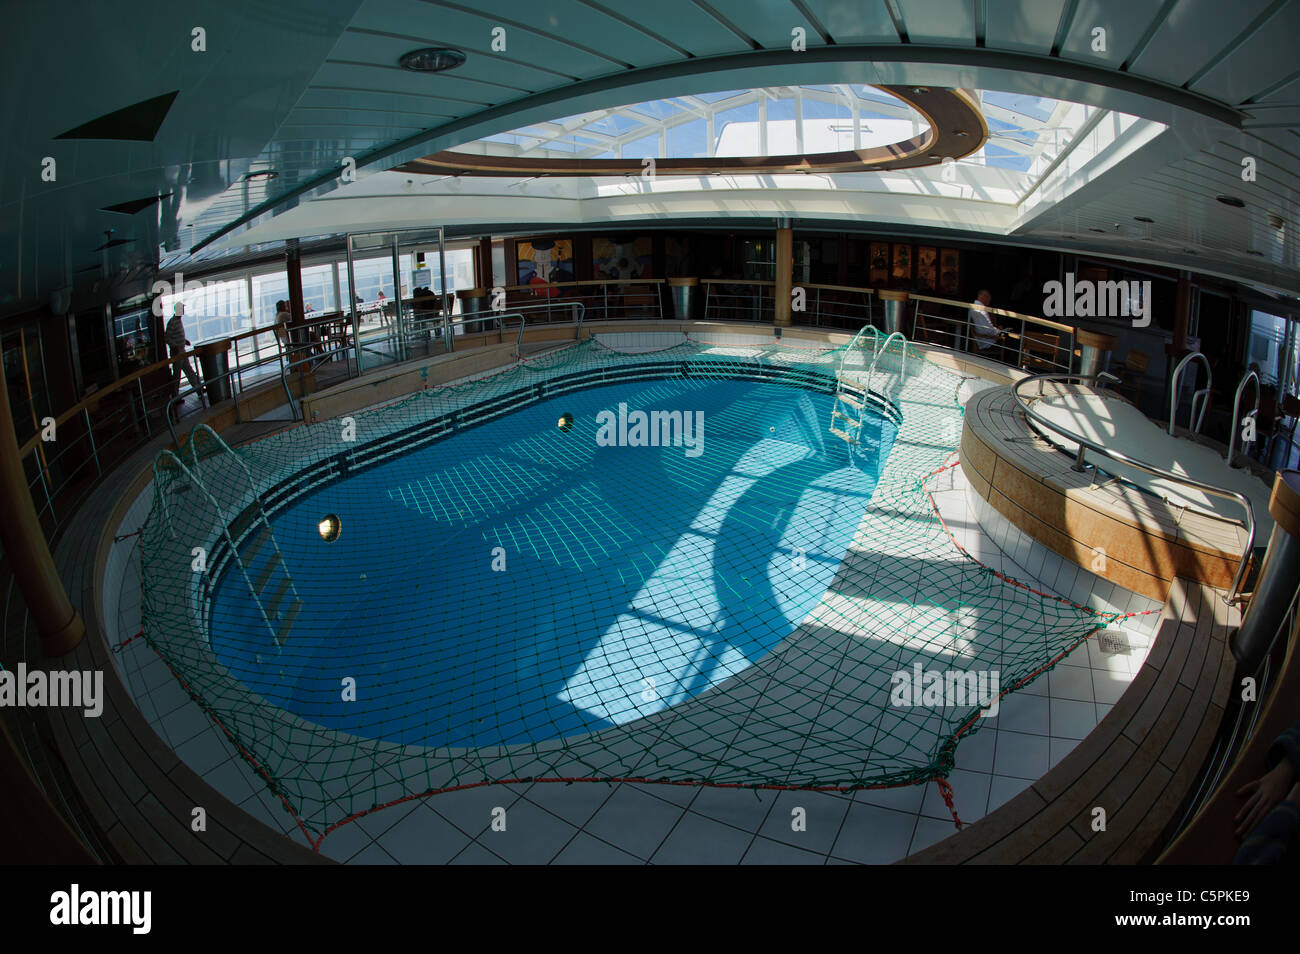 Swimming pool area on the brittany ferries mv pont aven stock photo royalty free image - Swimming pool area ...